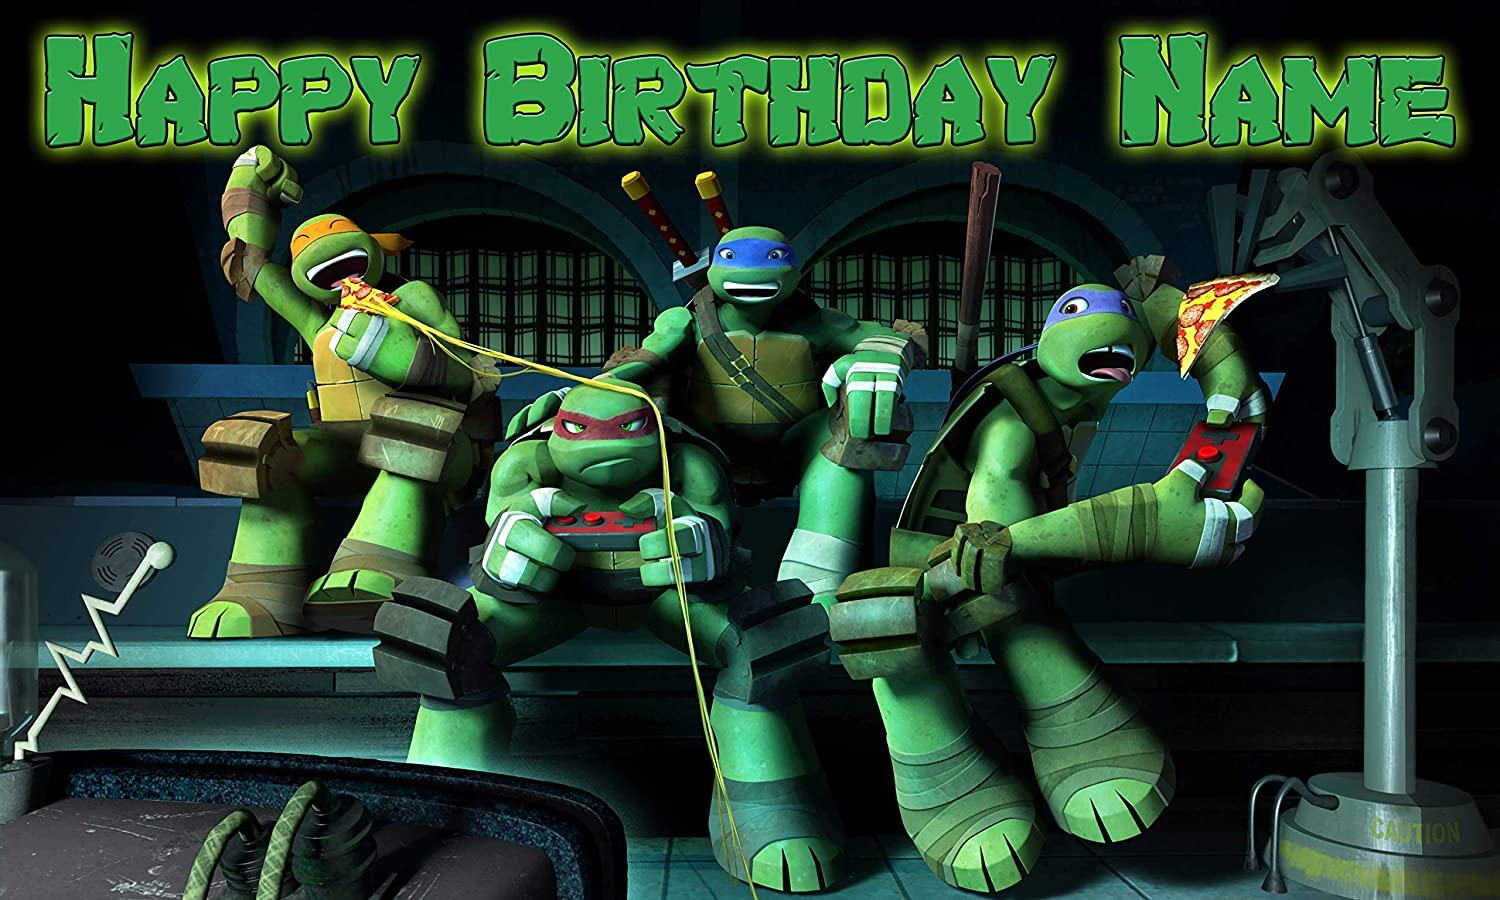 Amazon.com: Ninja Turtles Birthday Party Banner Personalized ...